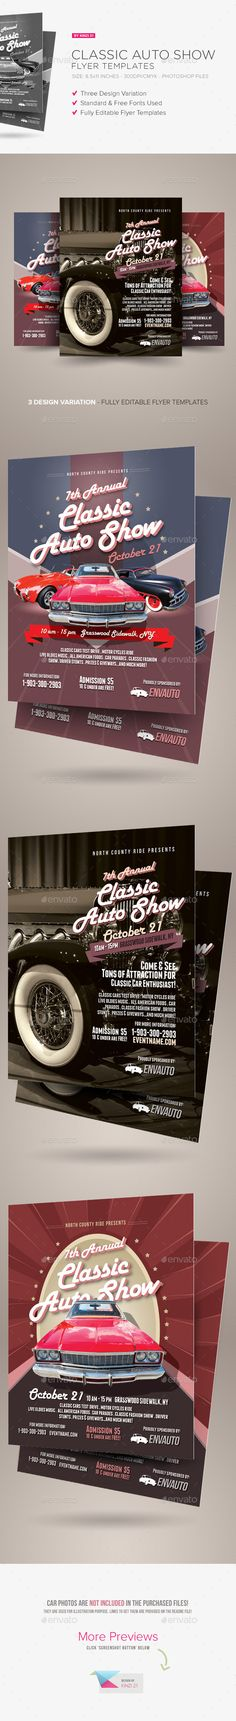 Classic Auto Show Flyers Template PSD | Buy and Download: http://graphicriver.net/item/classic-auto-show-flyers/8829272?WT.ac=category_thumb&WT.z_author=kinzi21&ref=ksioks